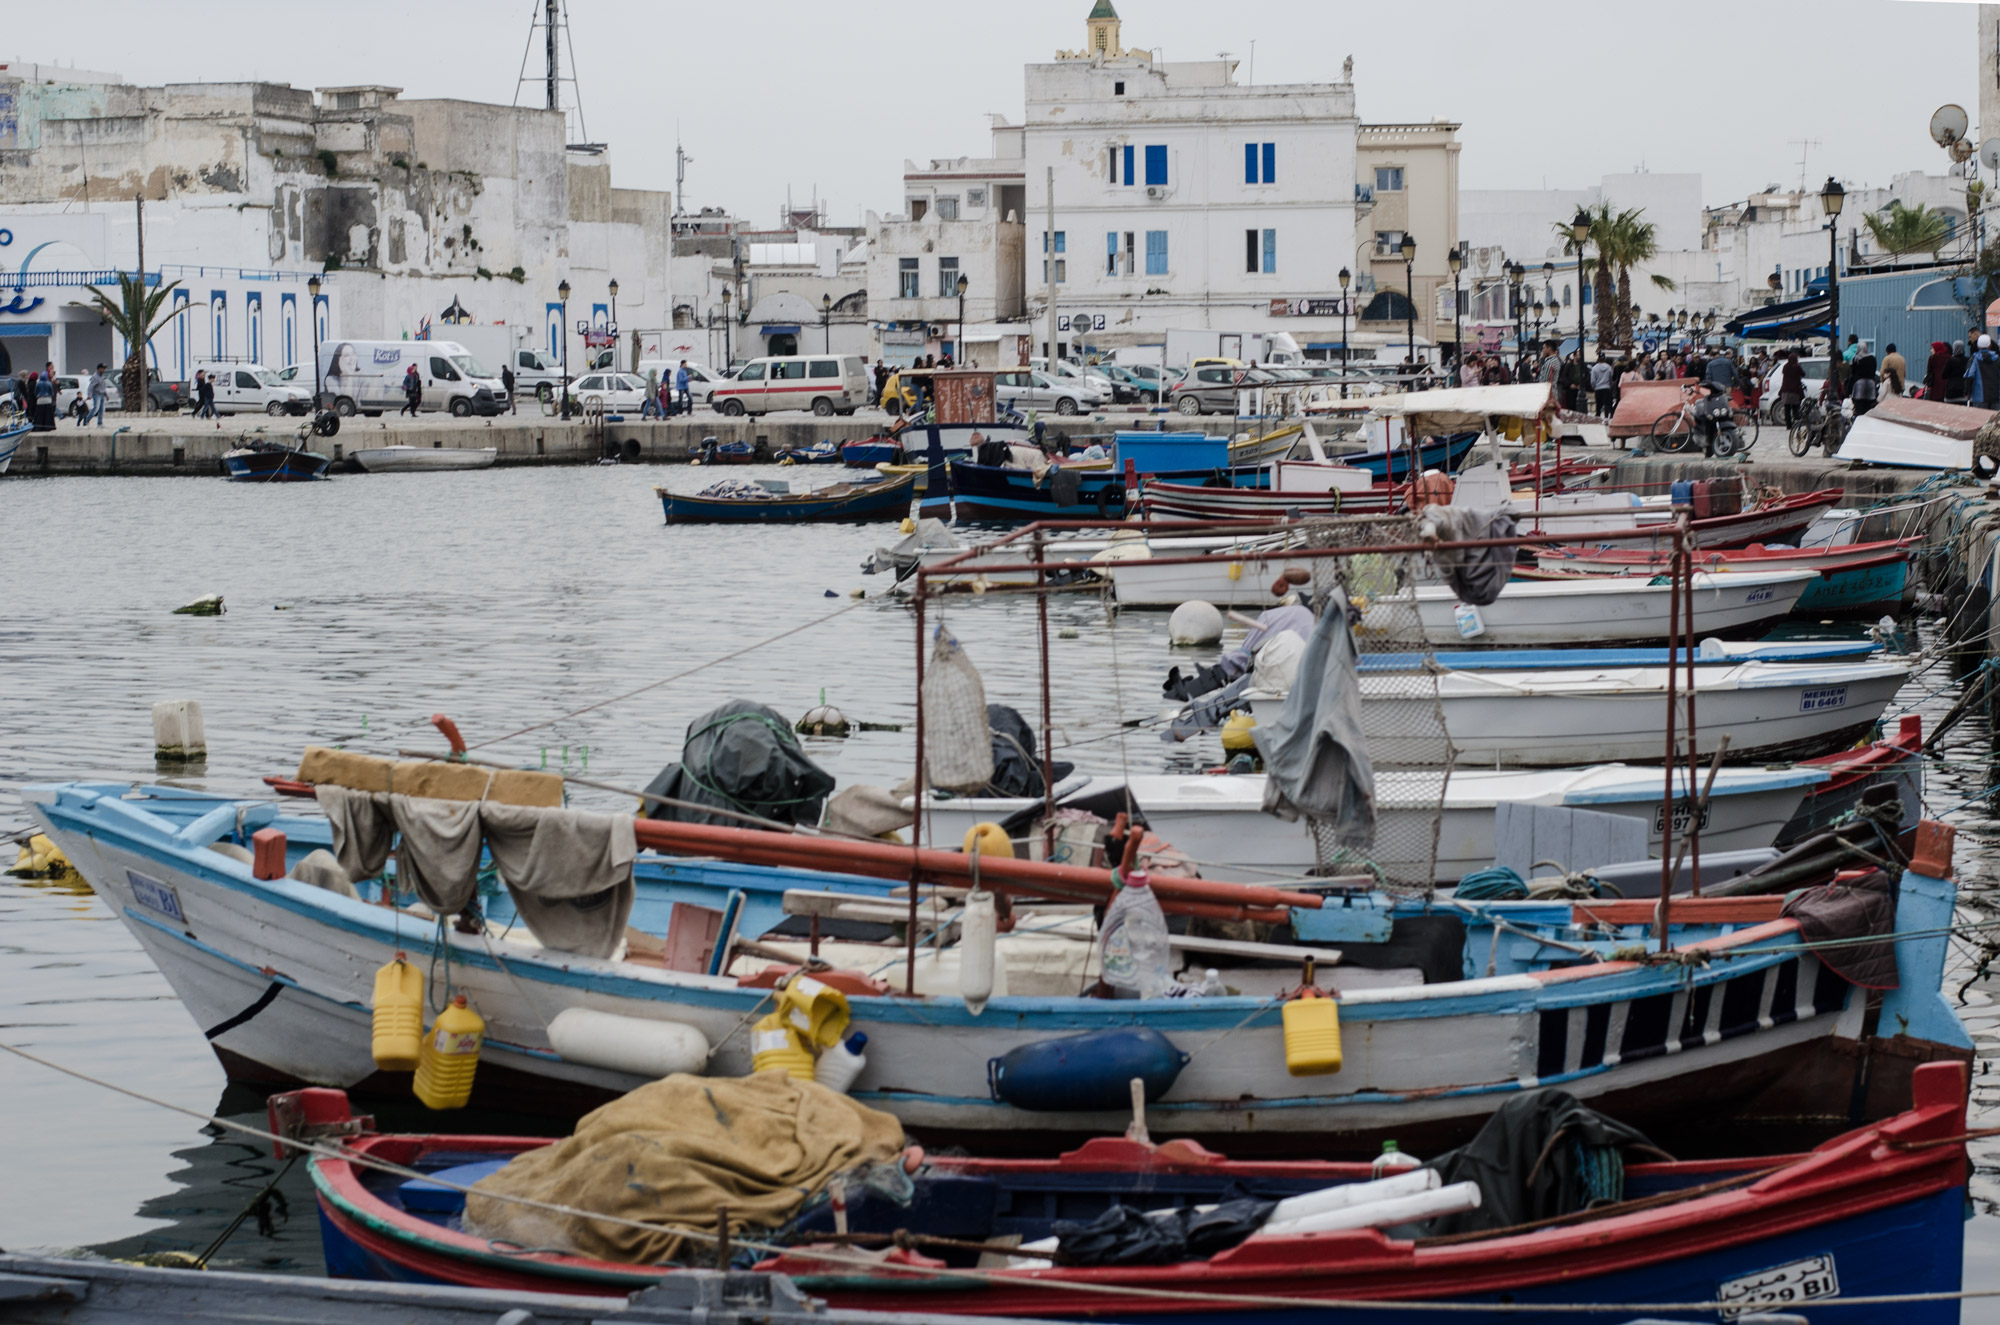 Fishing boats moored in the old port in Bizerte.